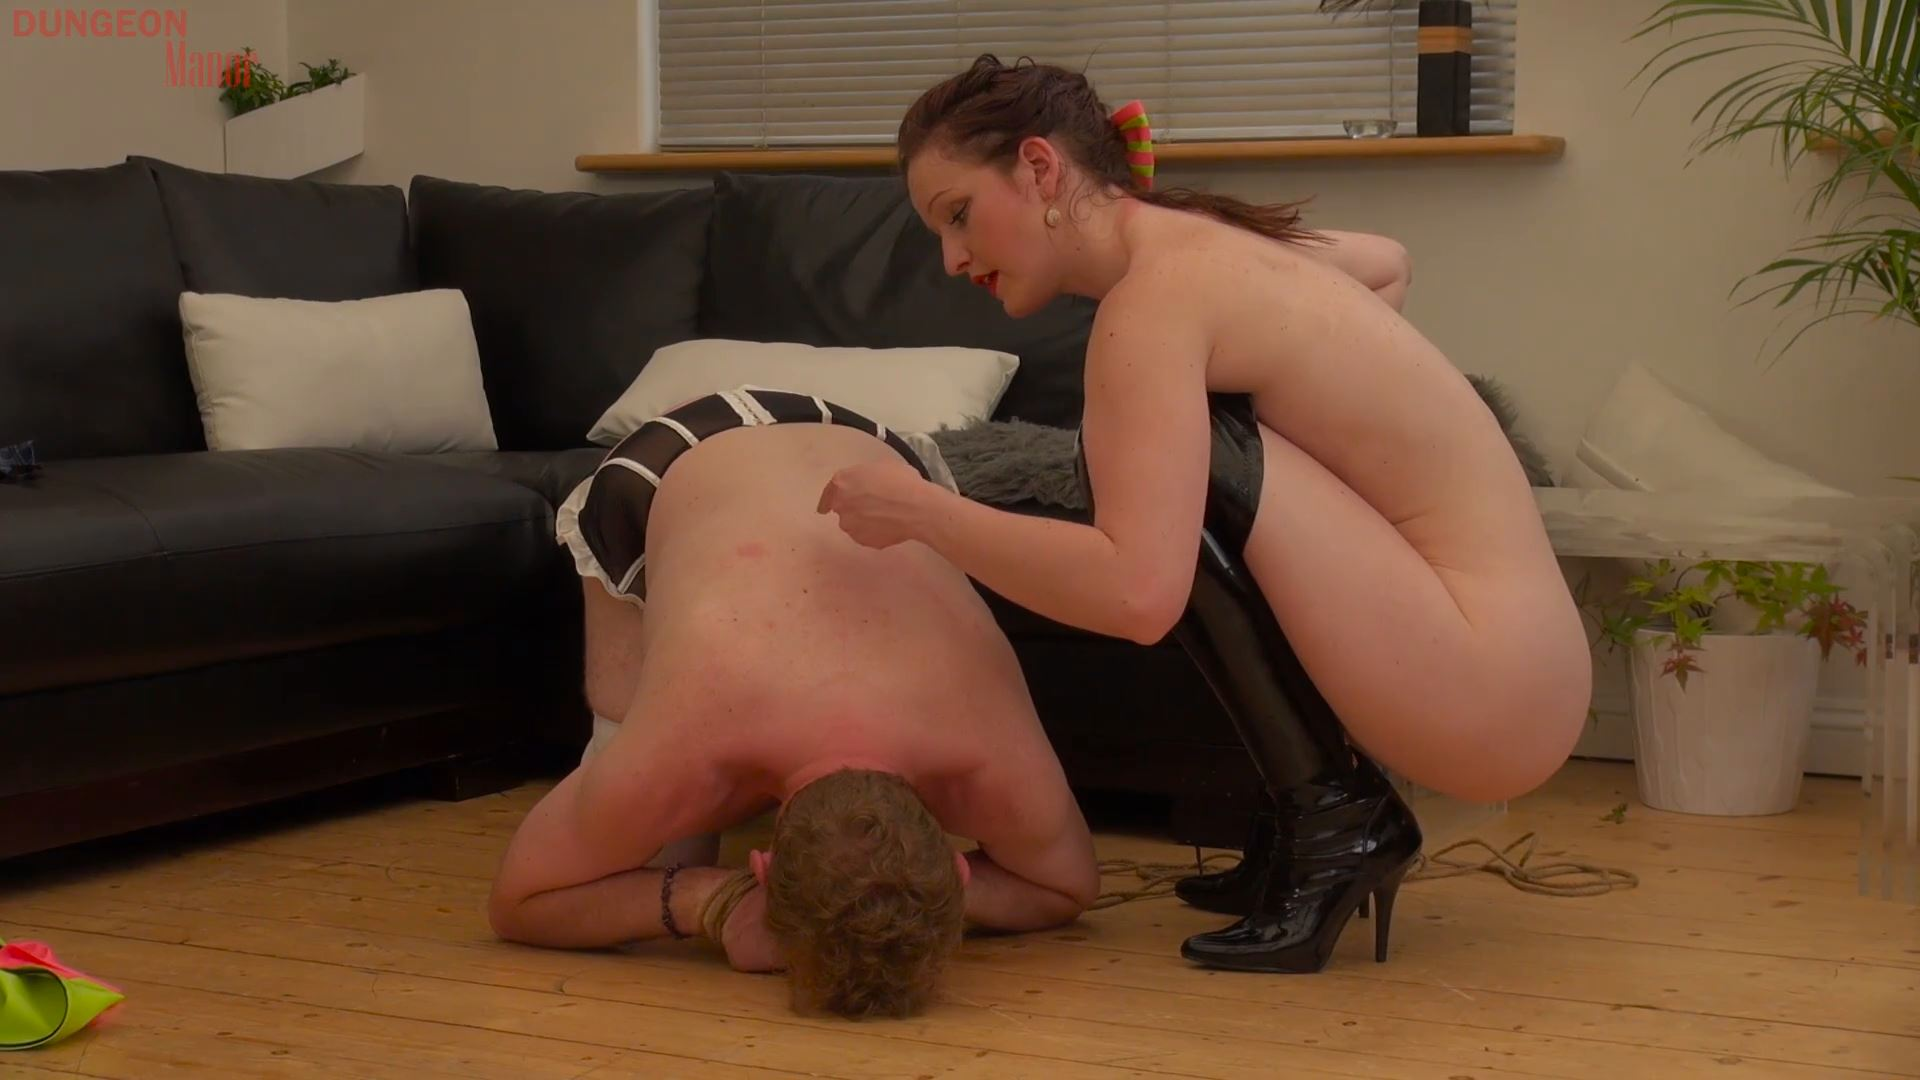 A dungeon Manor Production 408 - MISTRESS EVILYNE - FULL HD/1080p/MP4